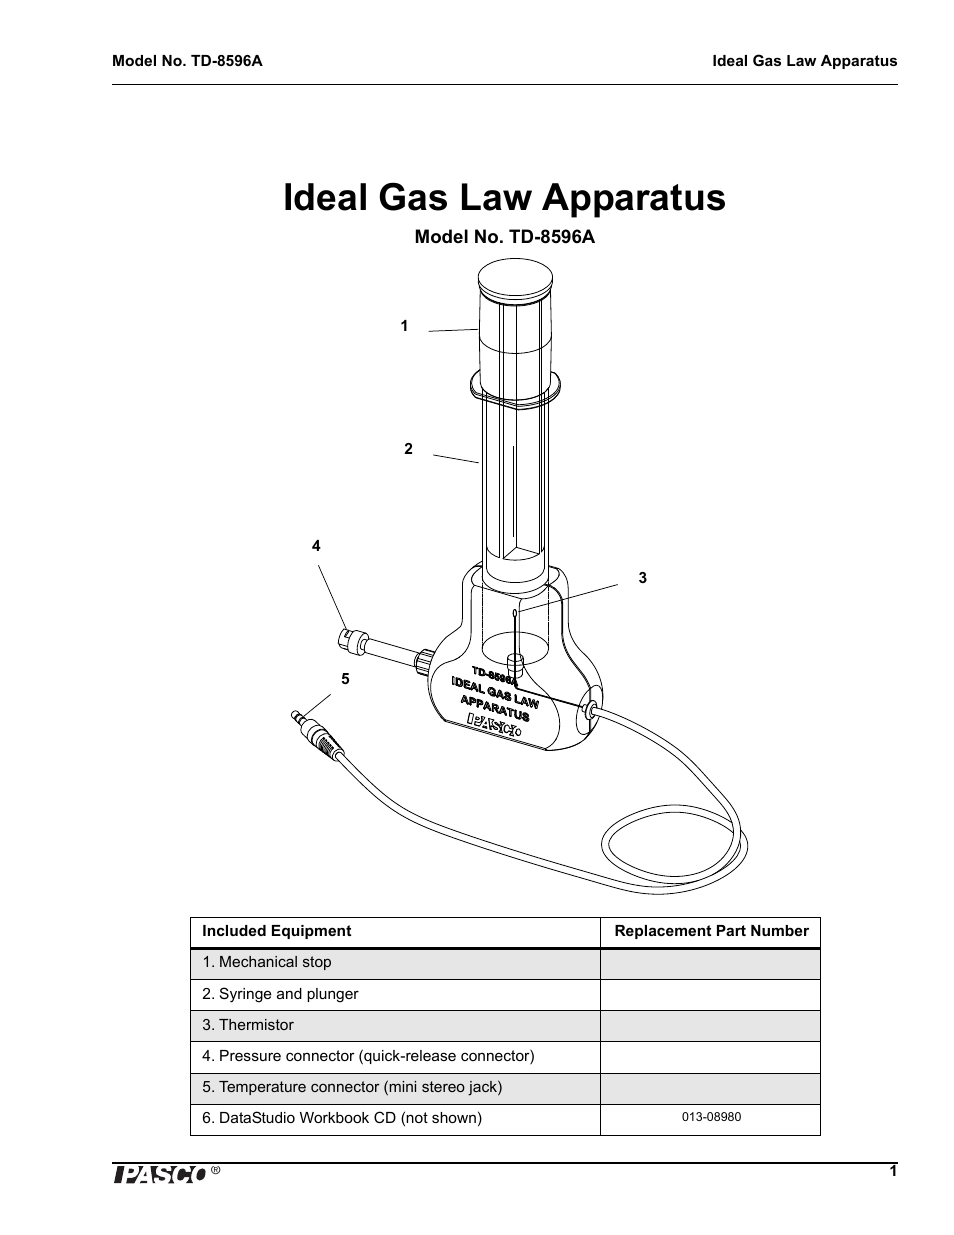 hight resolution of ideal gas law apparatus pasco td 8596a ideal gas law apparatus user manual page 3 12